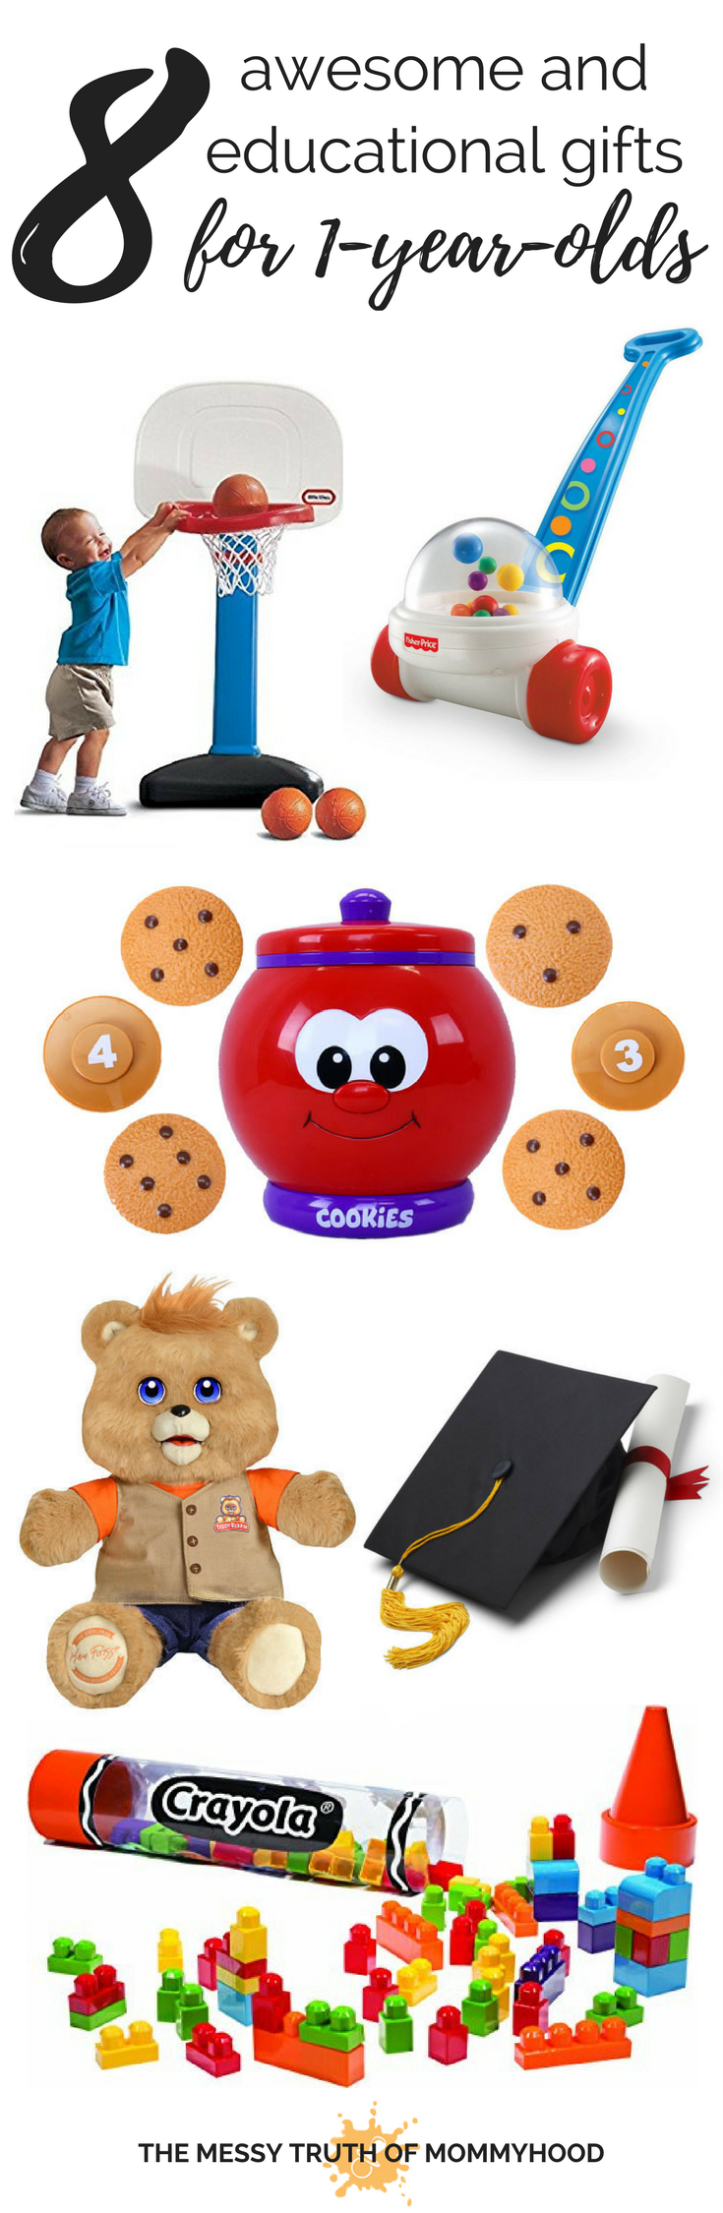 Eight Awesome and Educational Gifts for a 1-Year-Old's Birthday